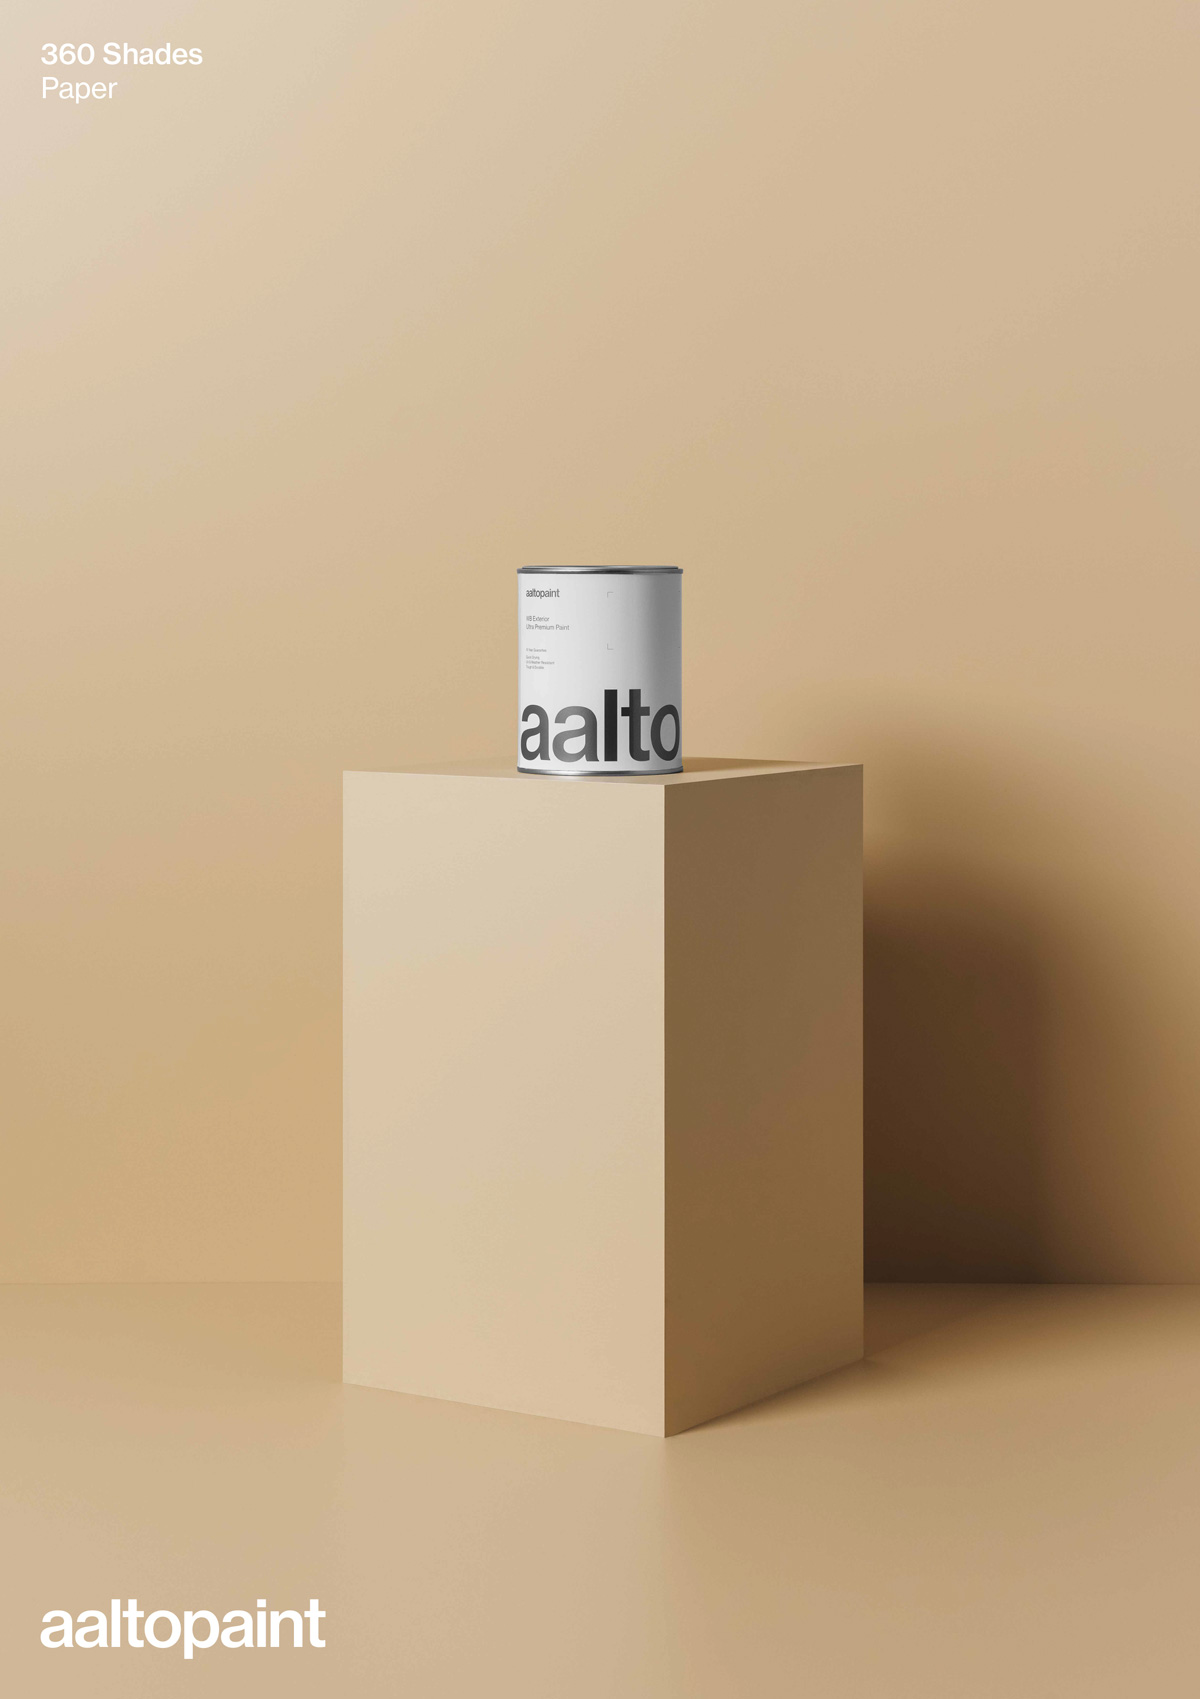 Aalto_Brand-Posters_A1-6.jpg